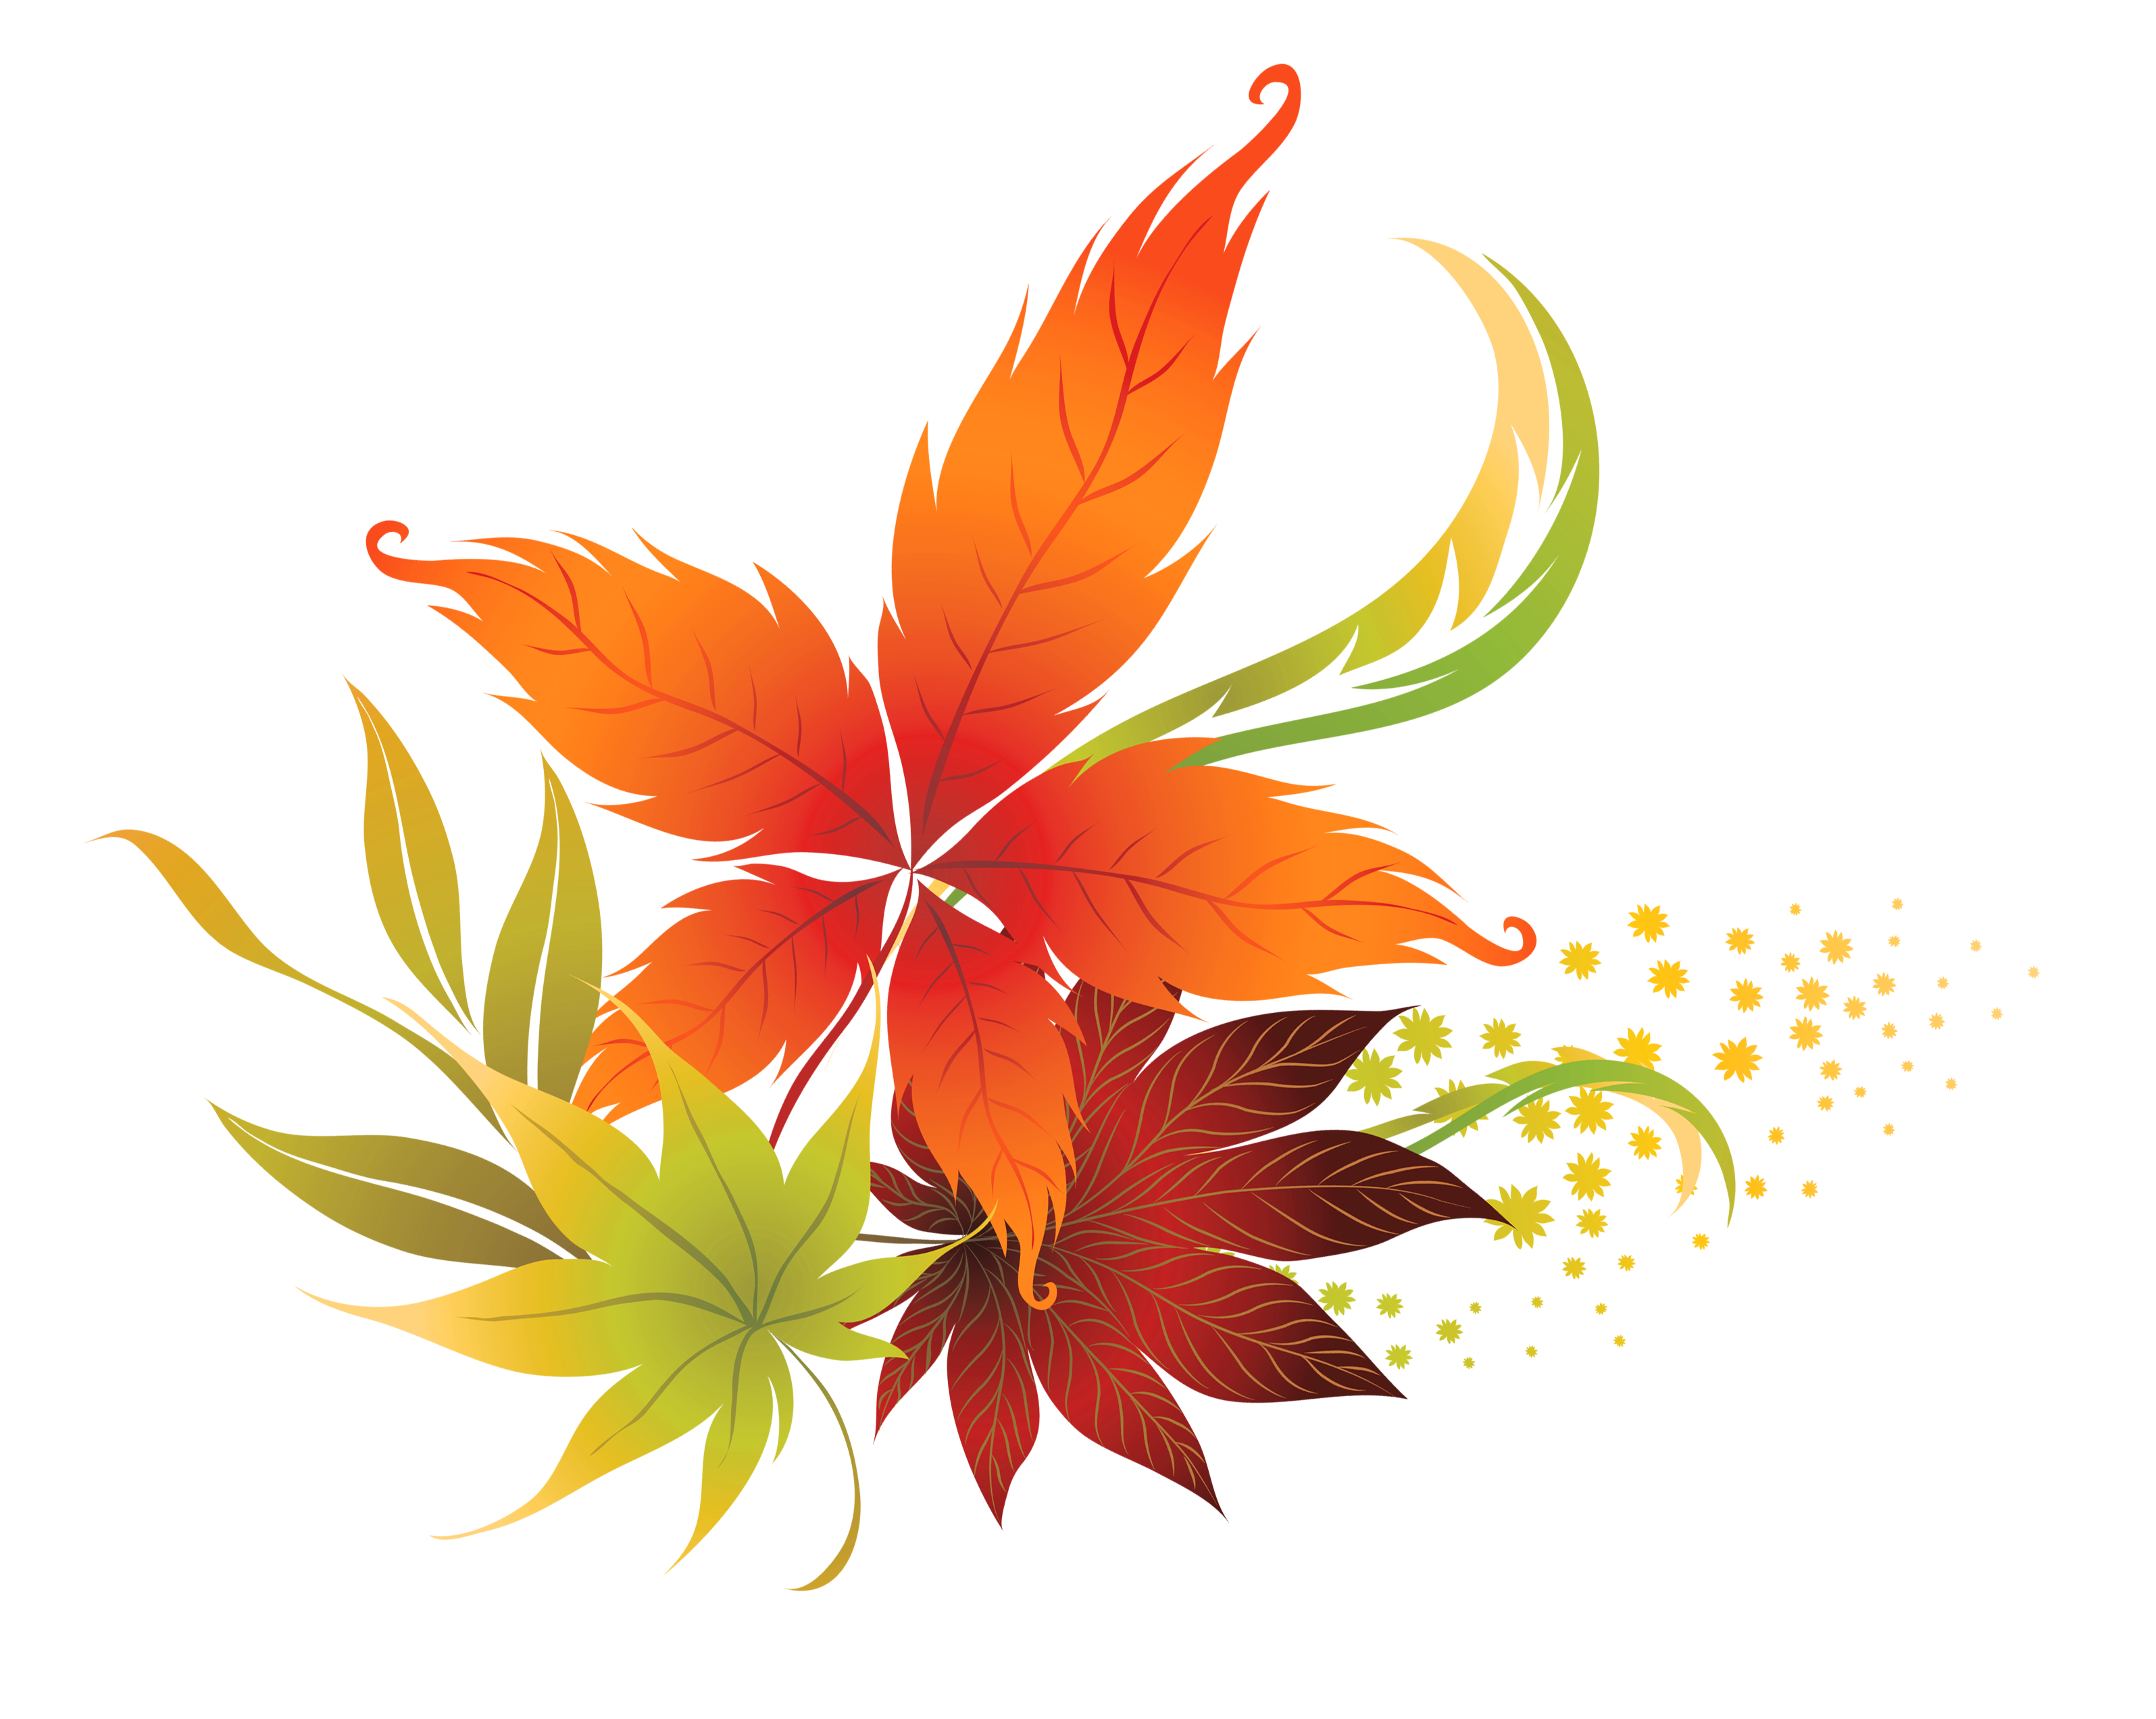 medium resolution of fall leaves fall leaf clipart no background free clipart images